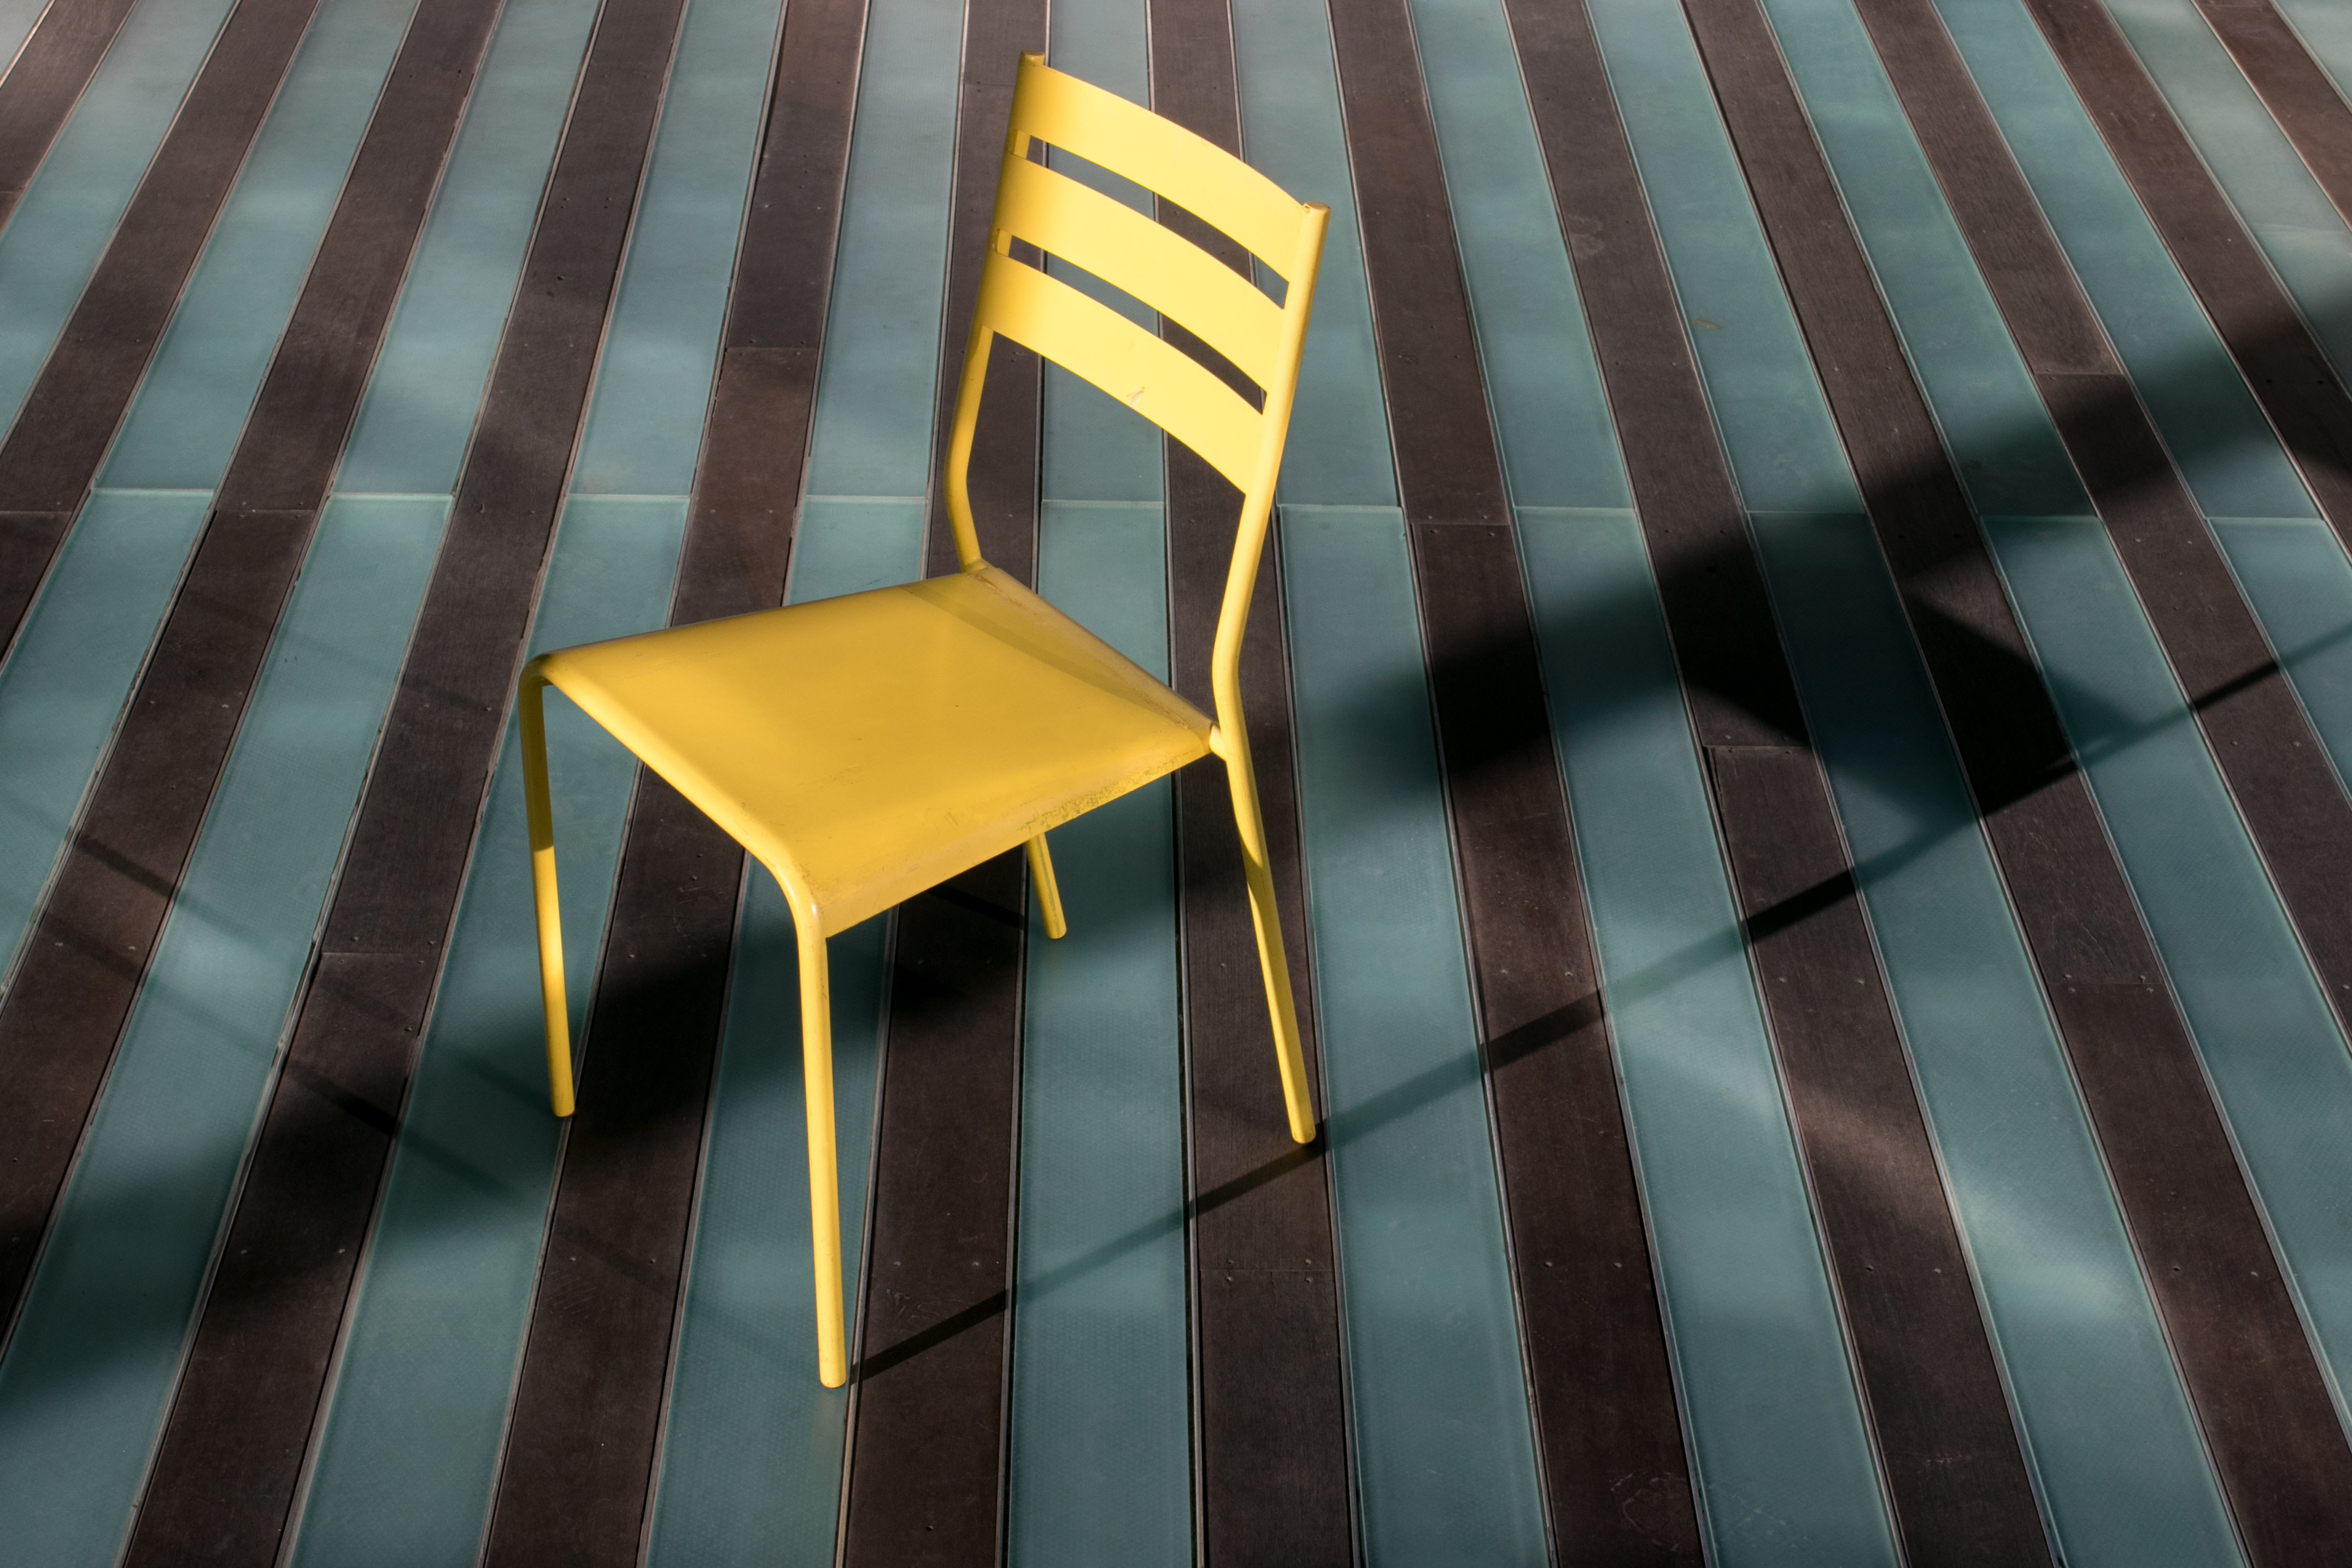 two yellow and gray wooden chairs